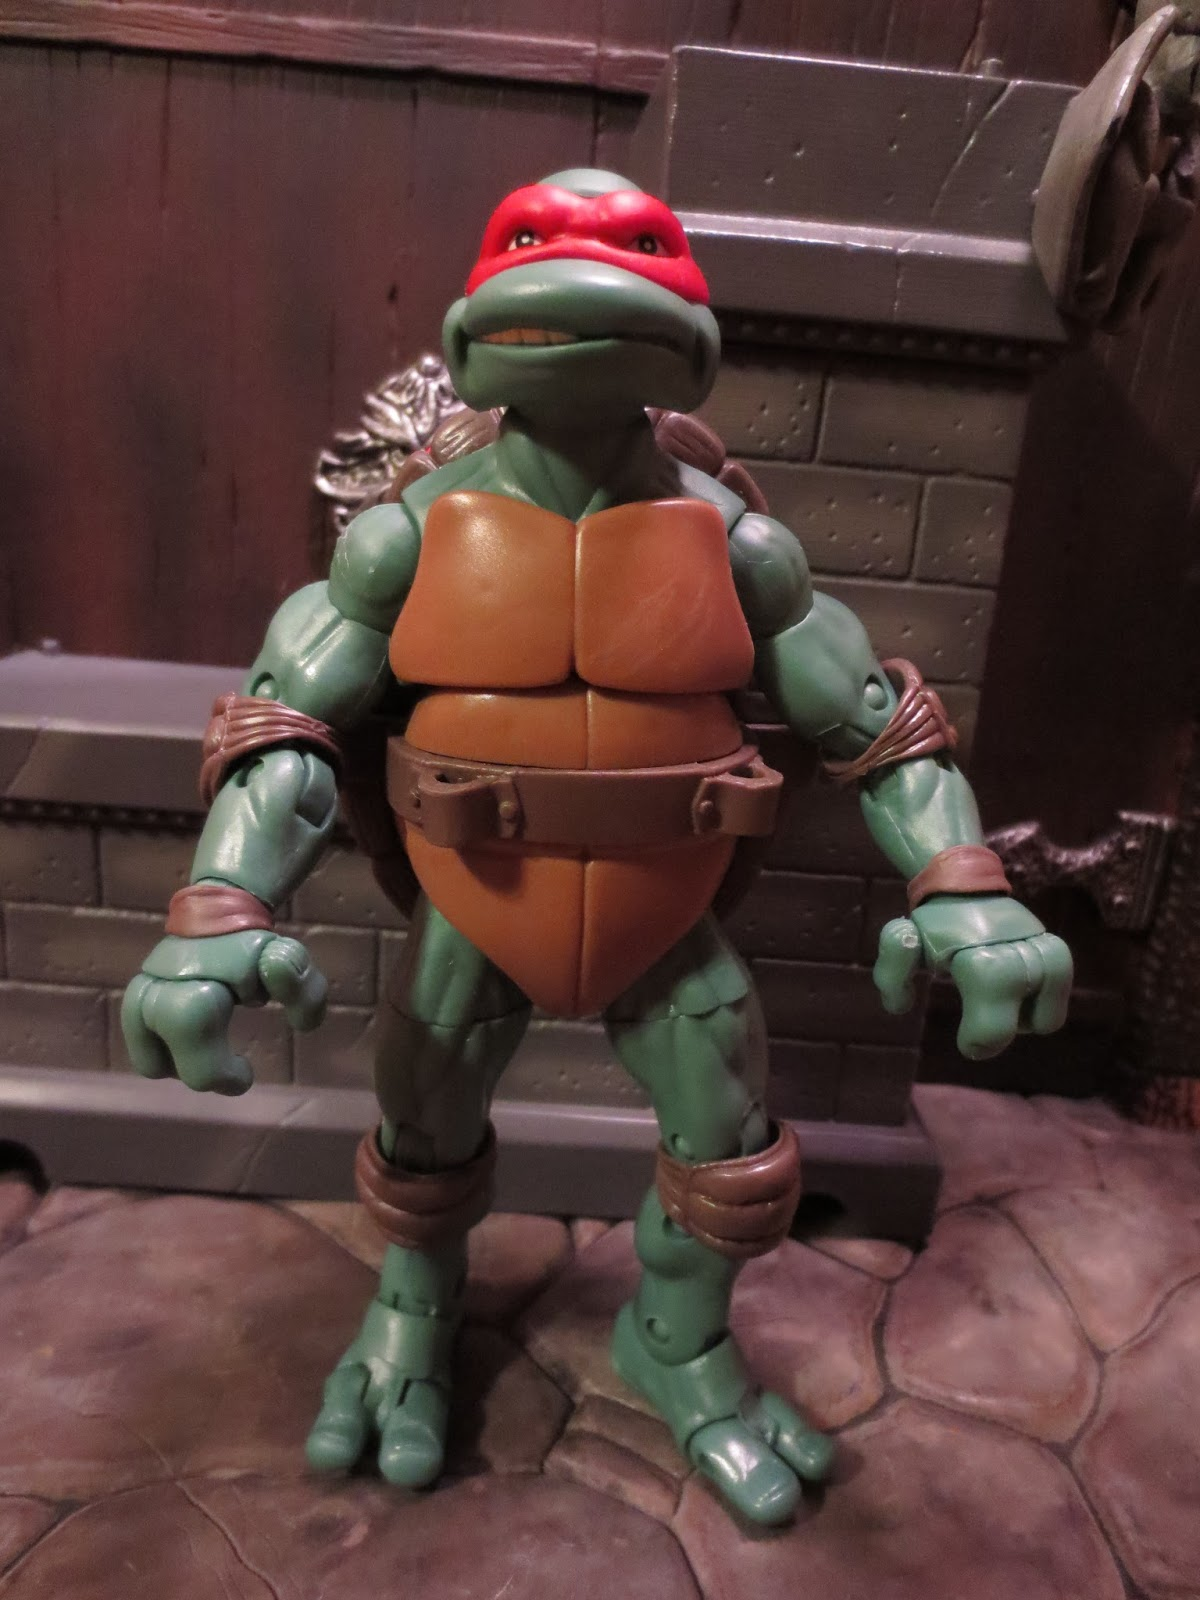 Retro review teenage mutant ninja turtles ii secret of the ooze - That Doesn T Make Them Any Less Fun Though So Check Out This Cool But Rude Review Of Raph After The Break